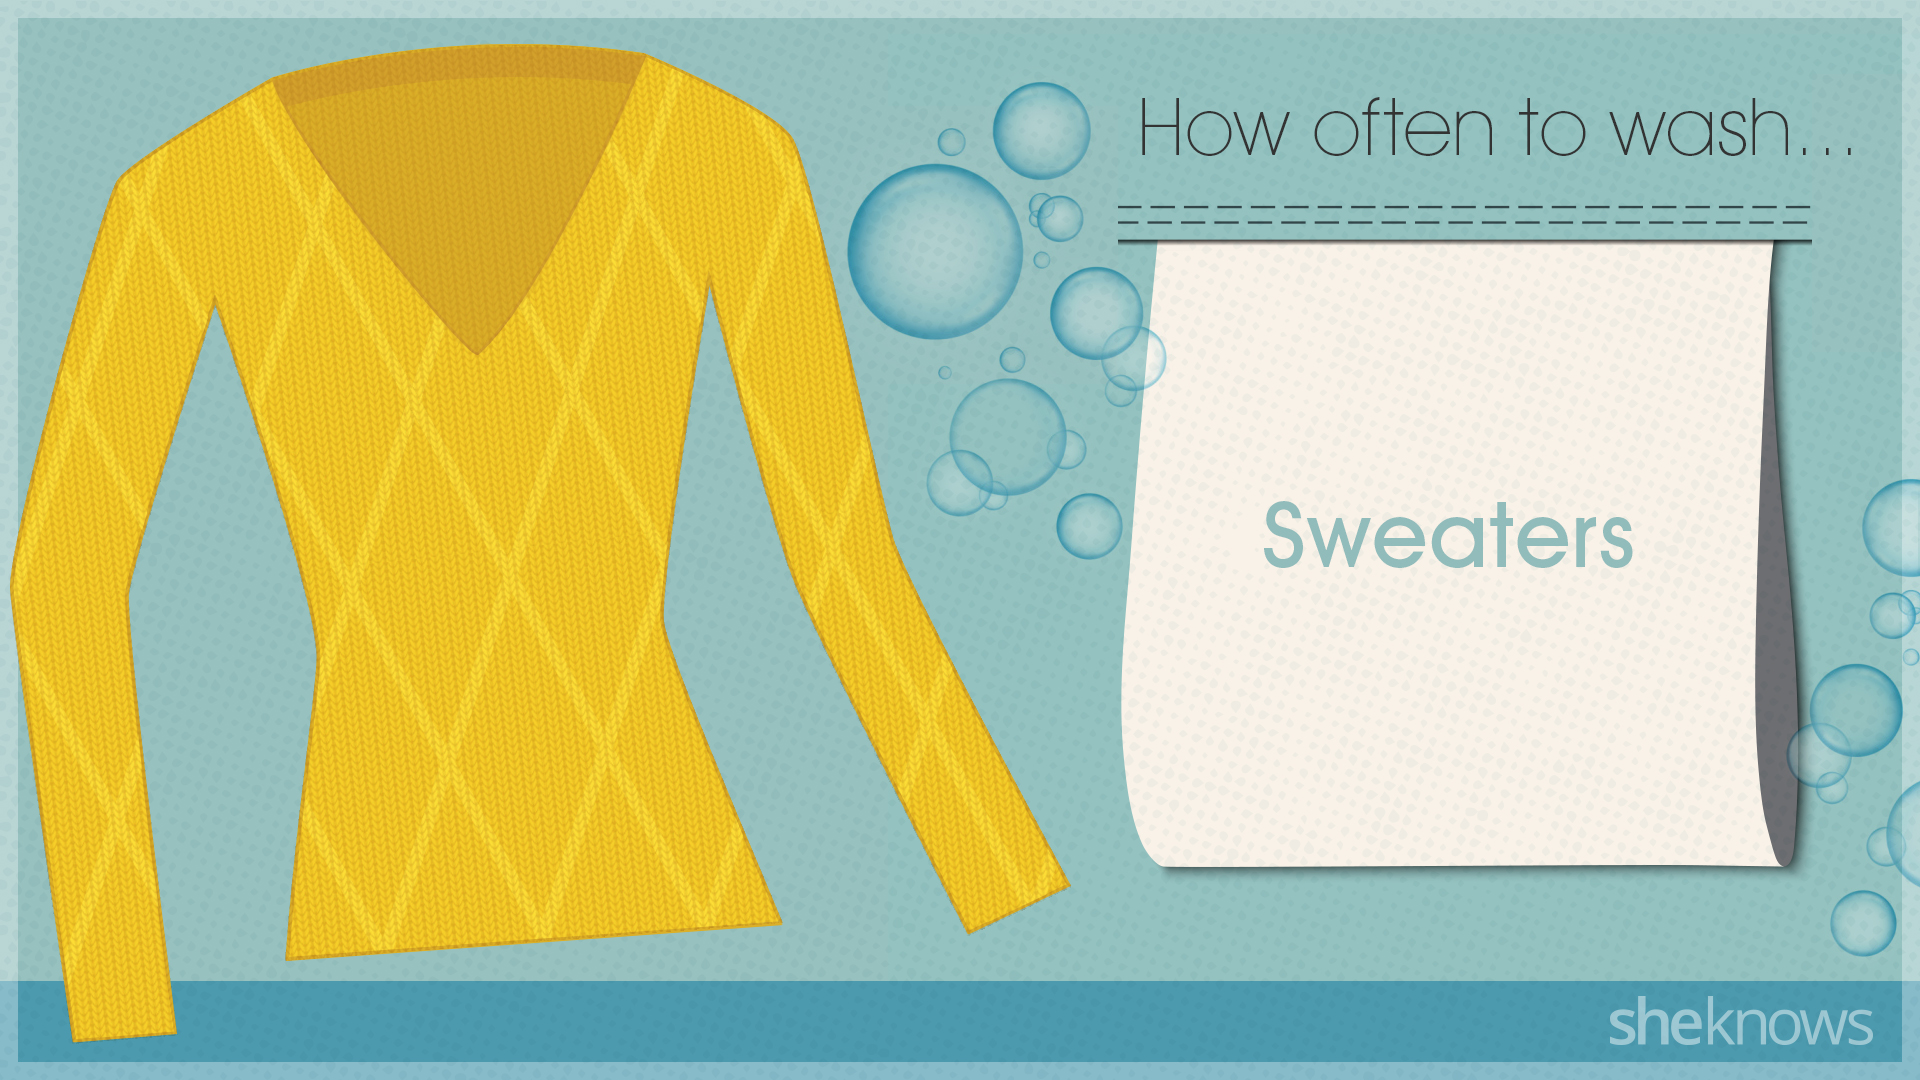 You're probably washing your clothes too much: Sweater